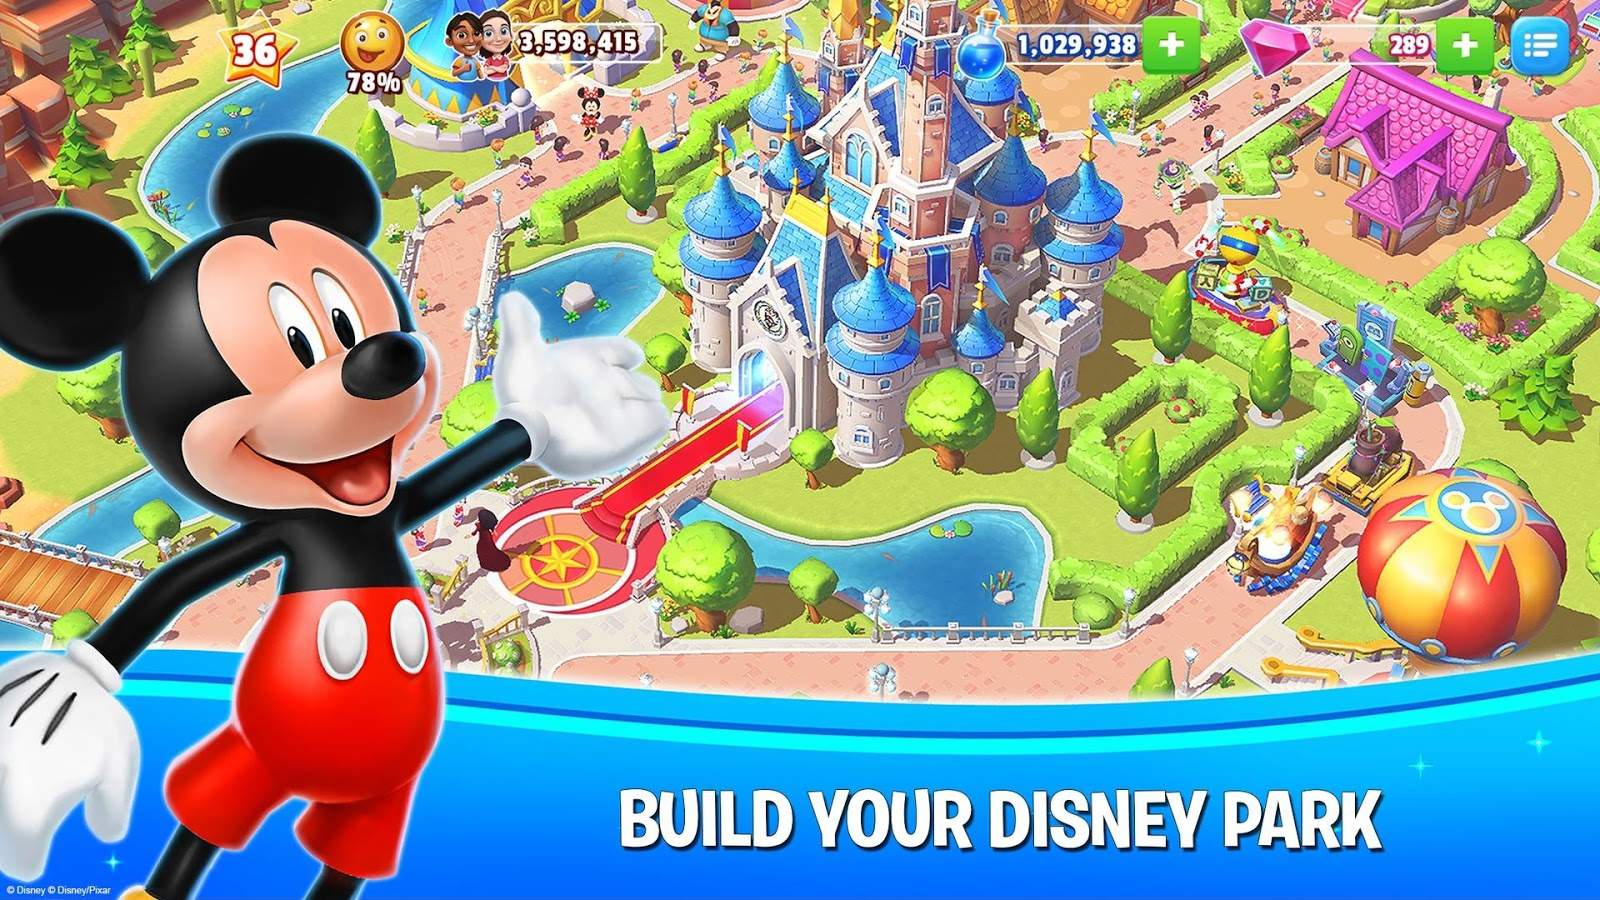 Home Design Game Cheats For Iphone Disney Magic Kingdoms Build Your Own Magical Park